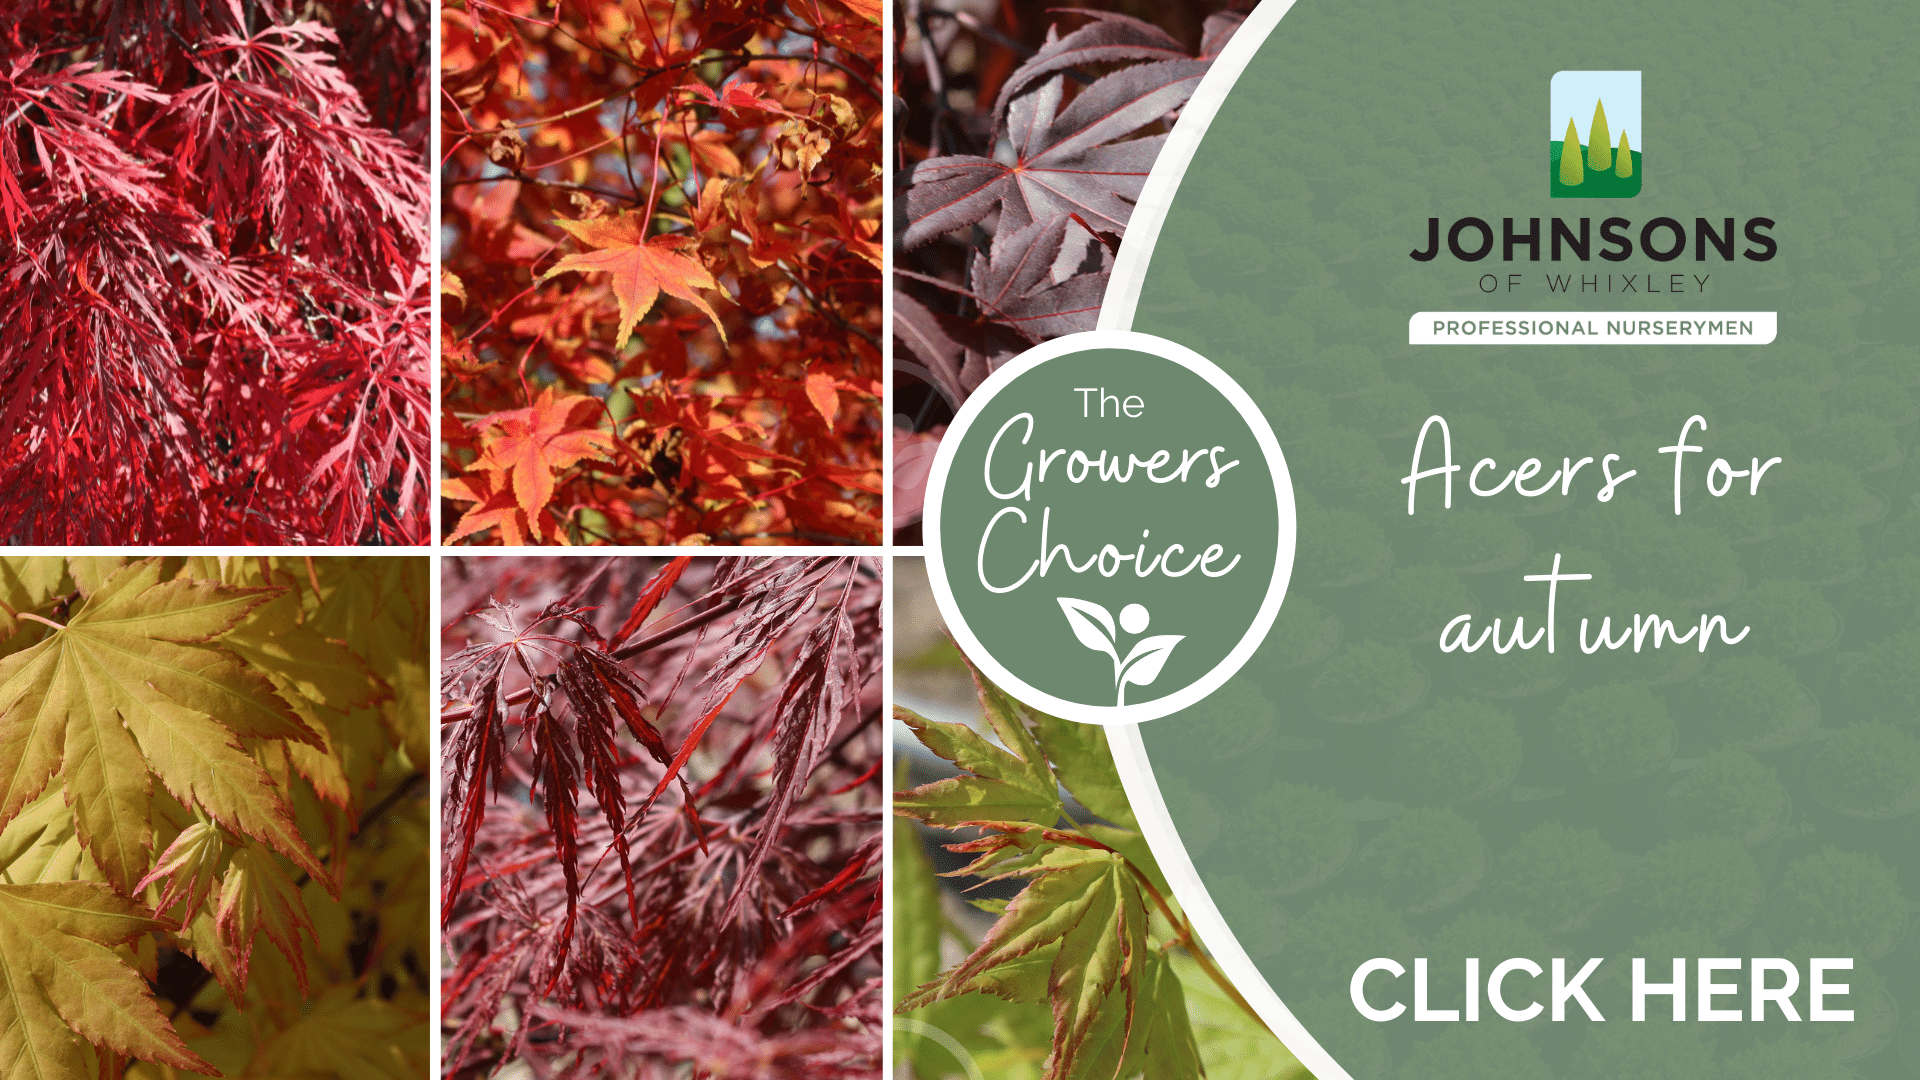 The Growers Choice - Acers for autumn